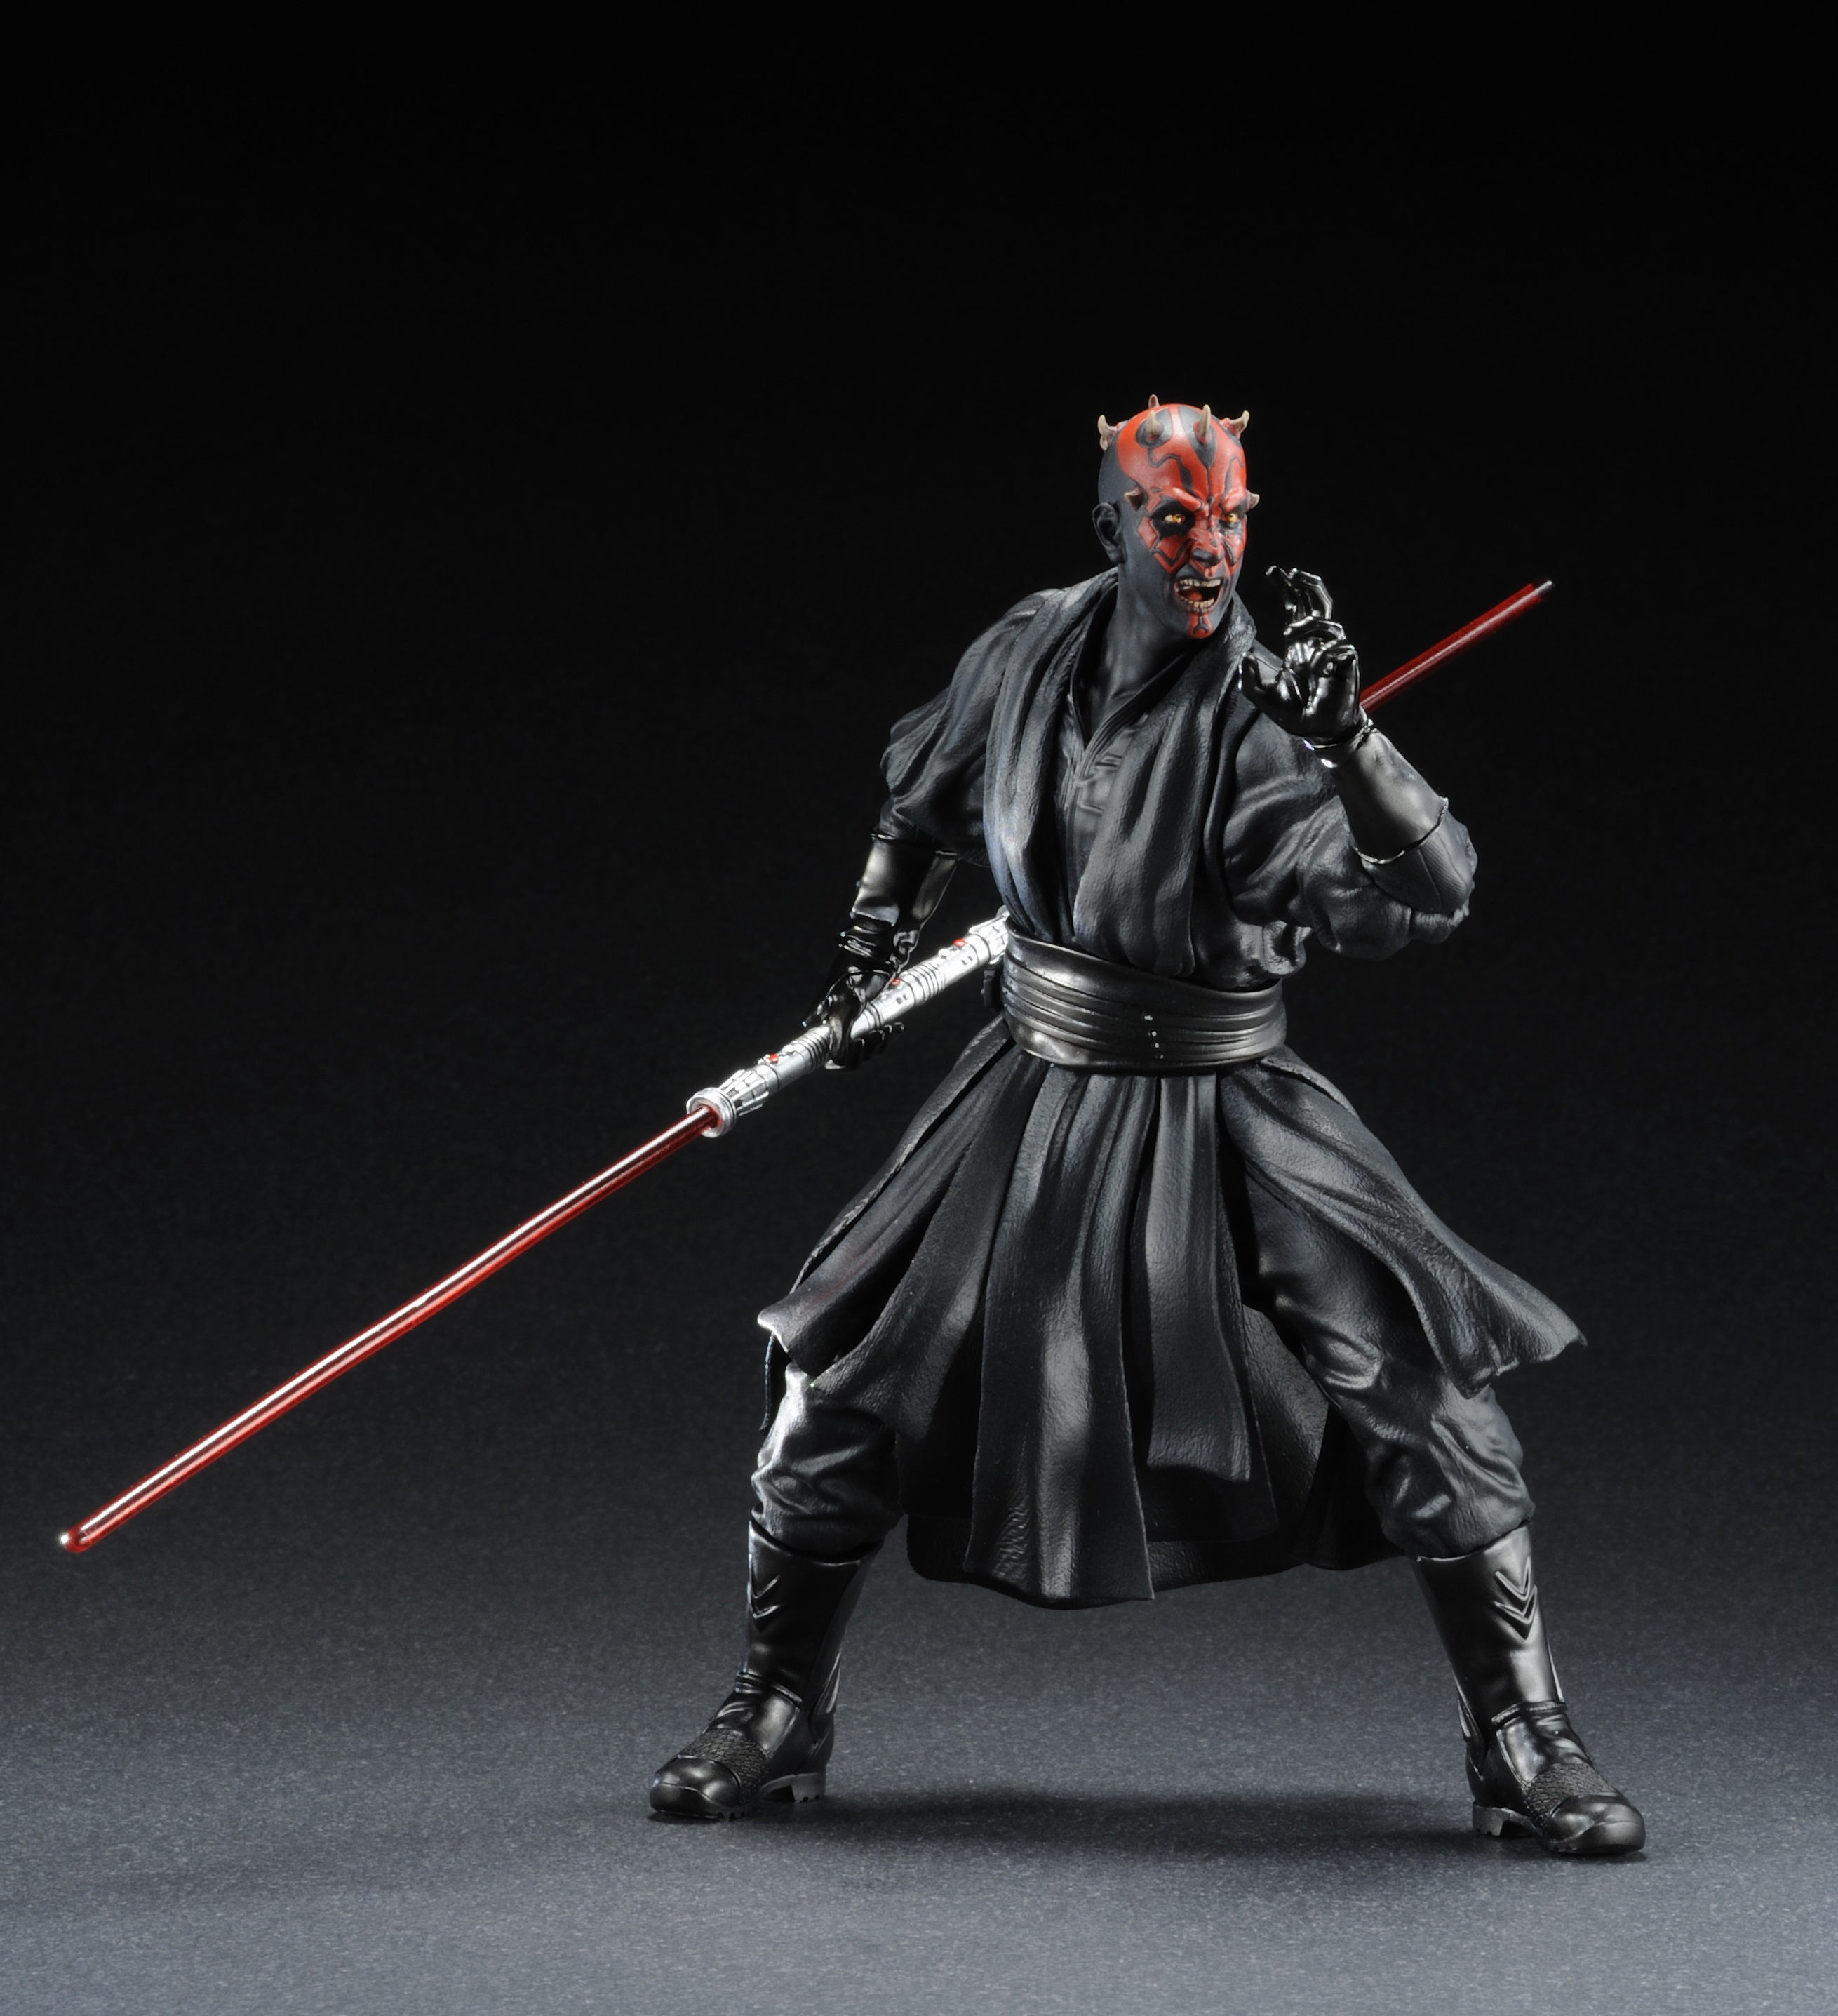 Star Wars Darth Maul The Phantom Menace ArtFX+ Statue